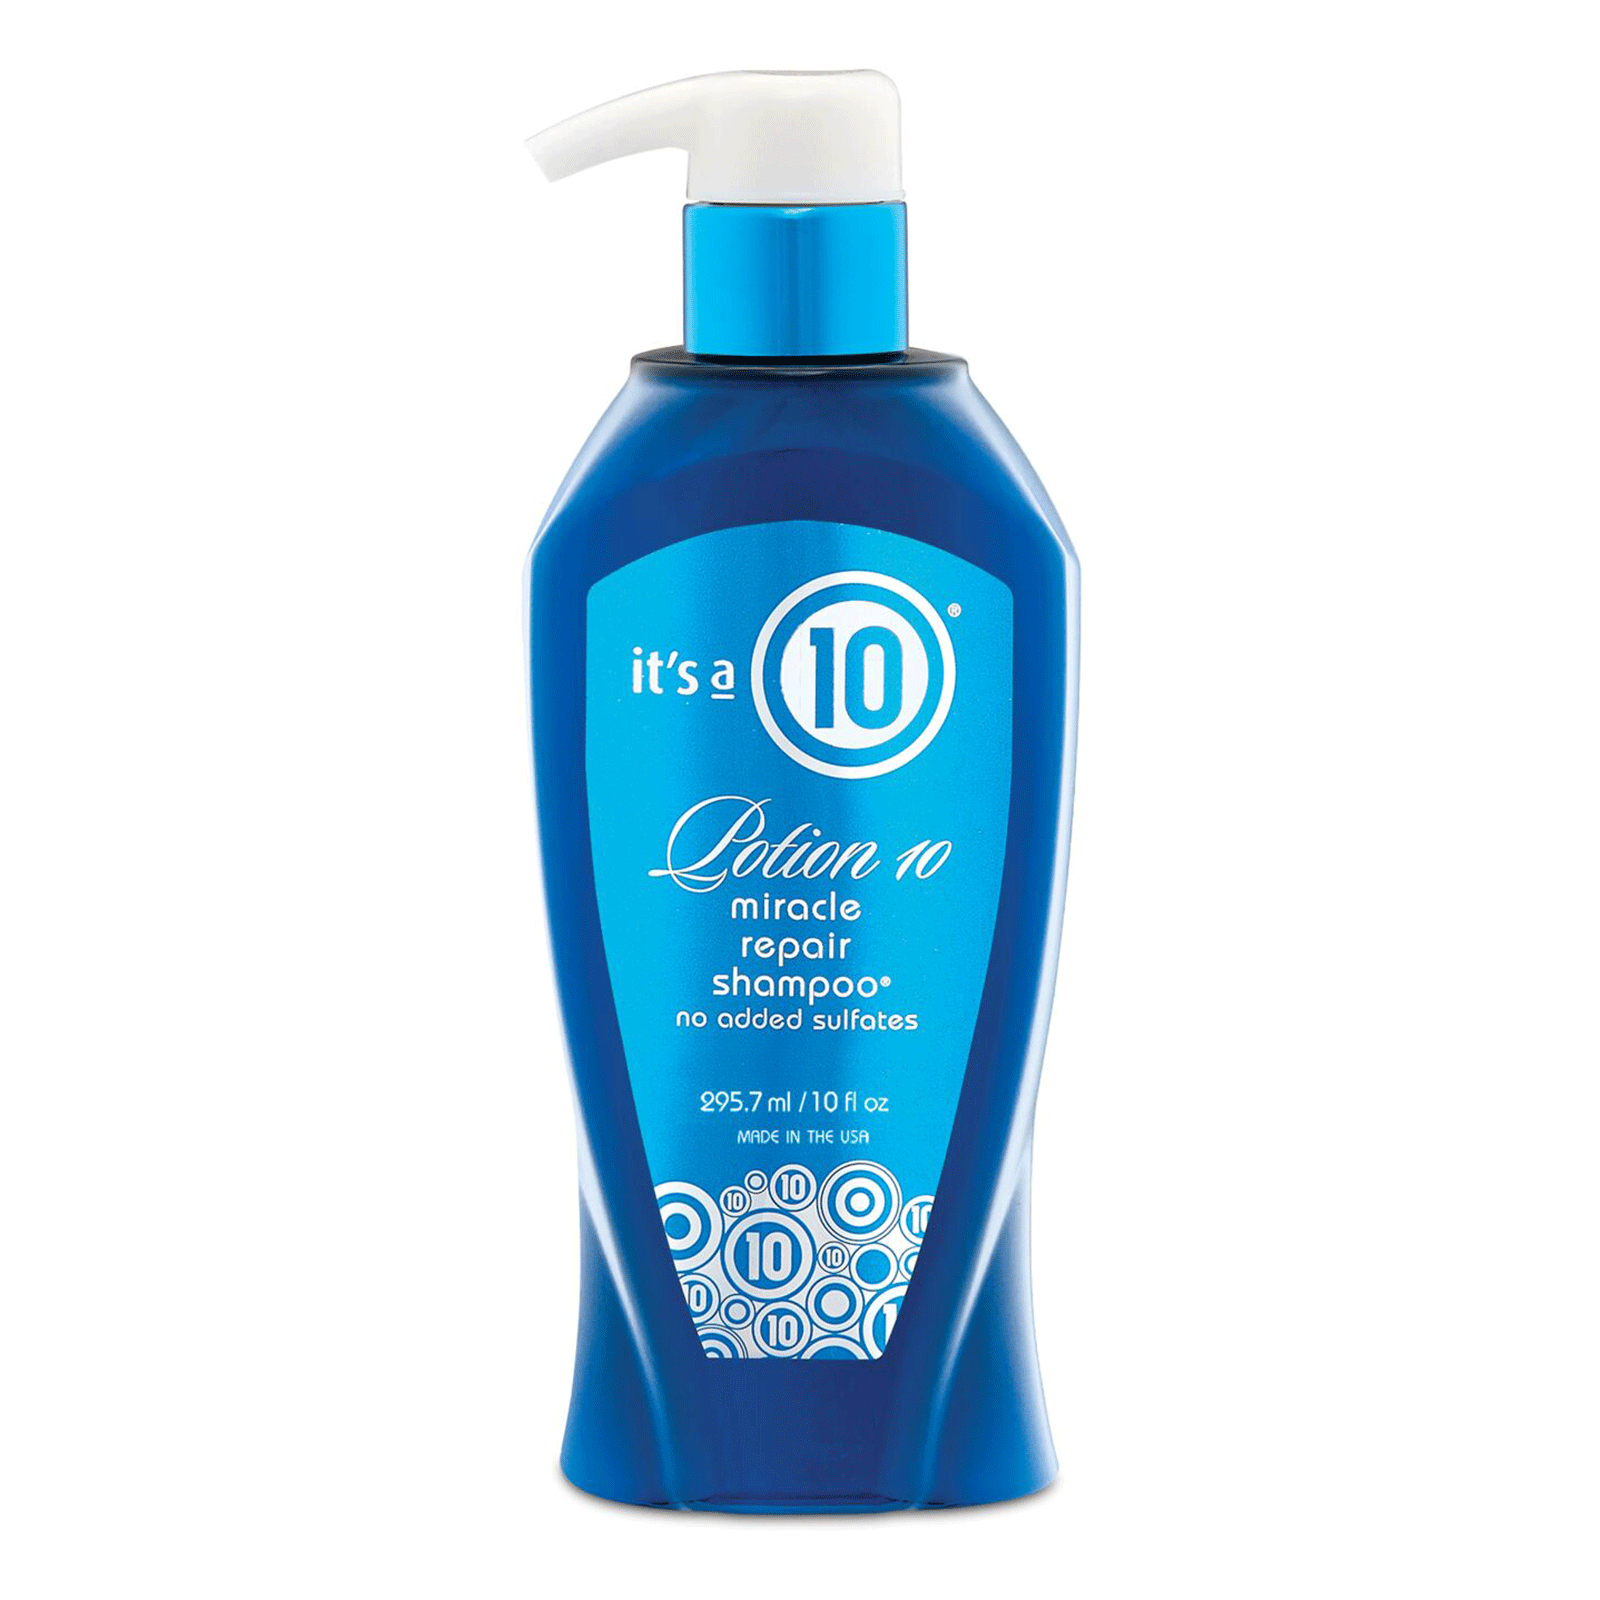 Potion 10 Miracle Repair Shampoo